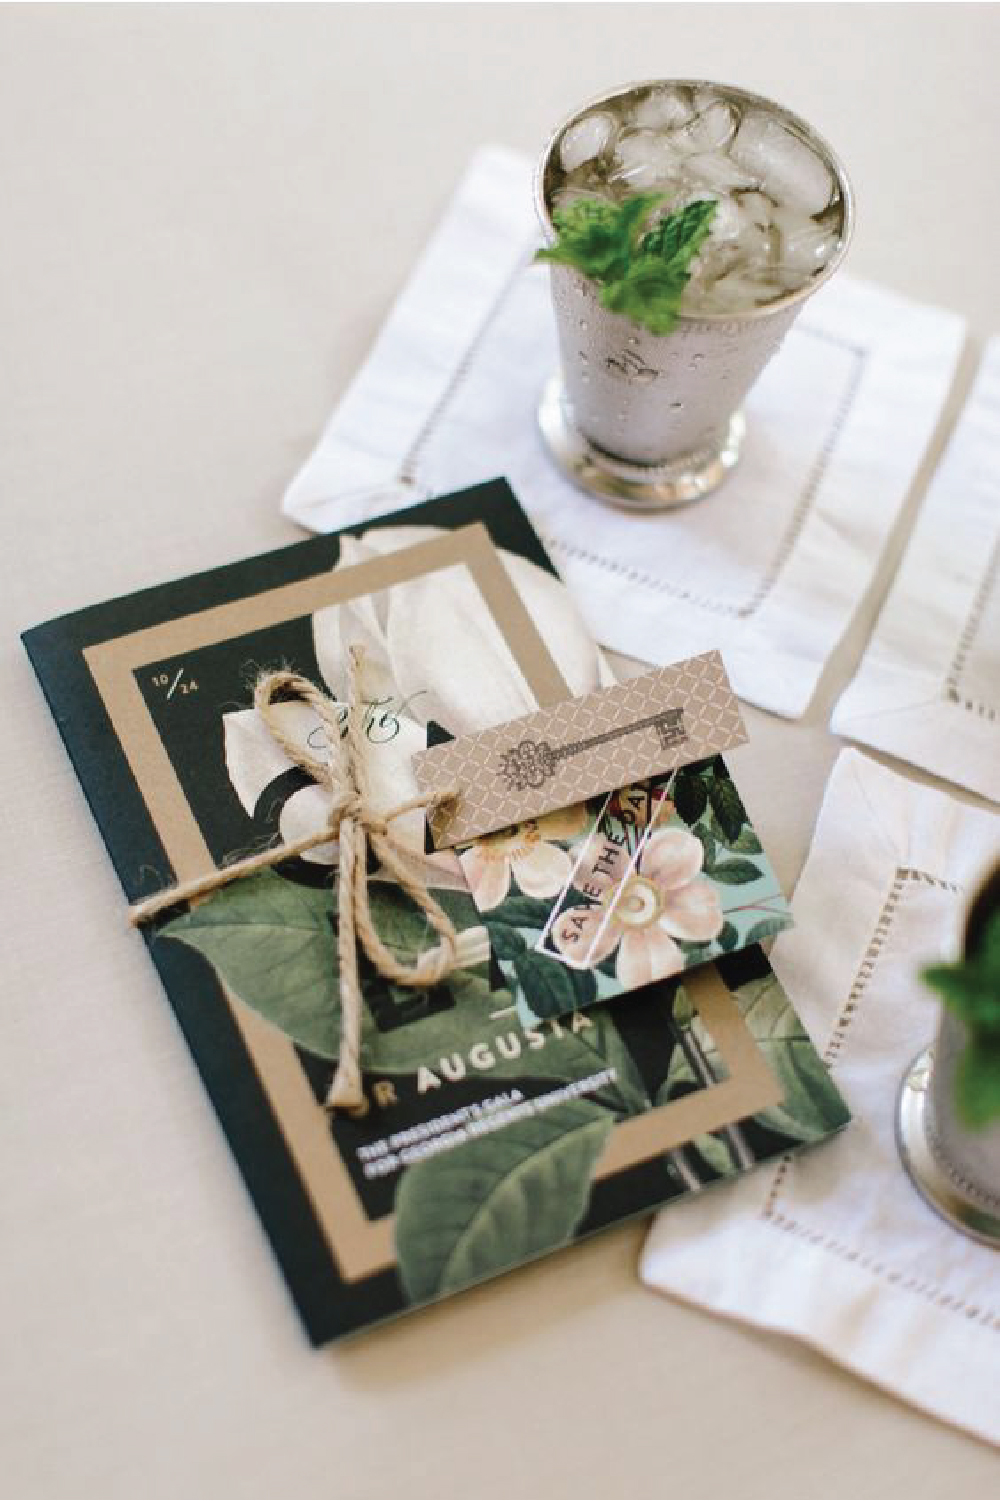 Extravagant invitation with layers, floral, kraft paper & type